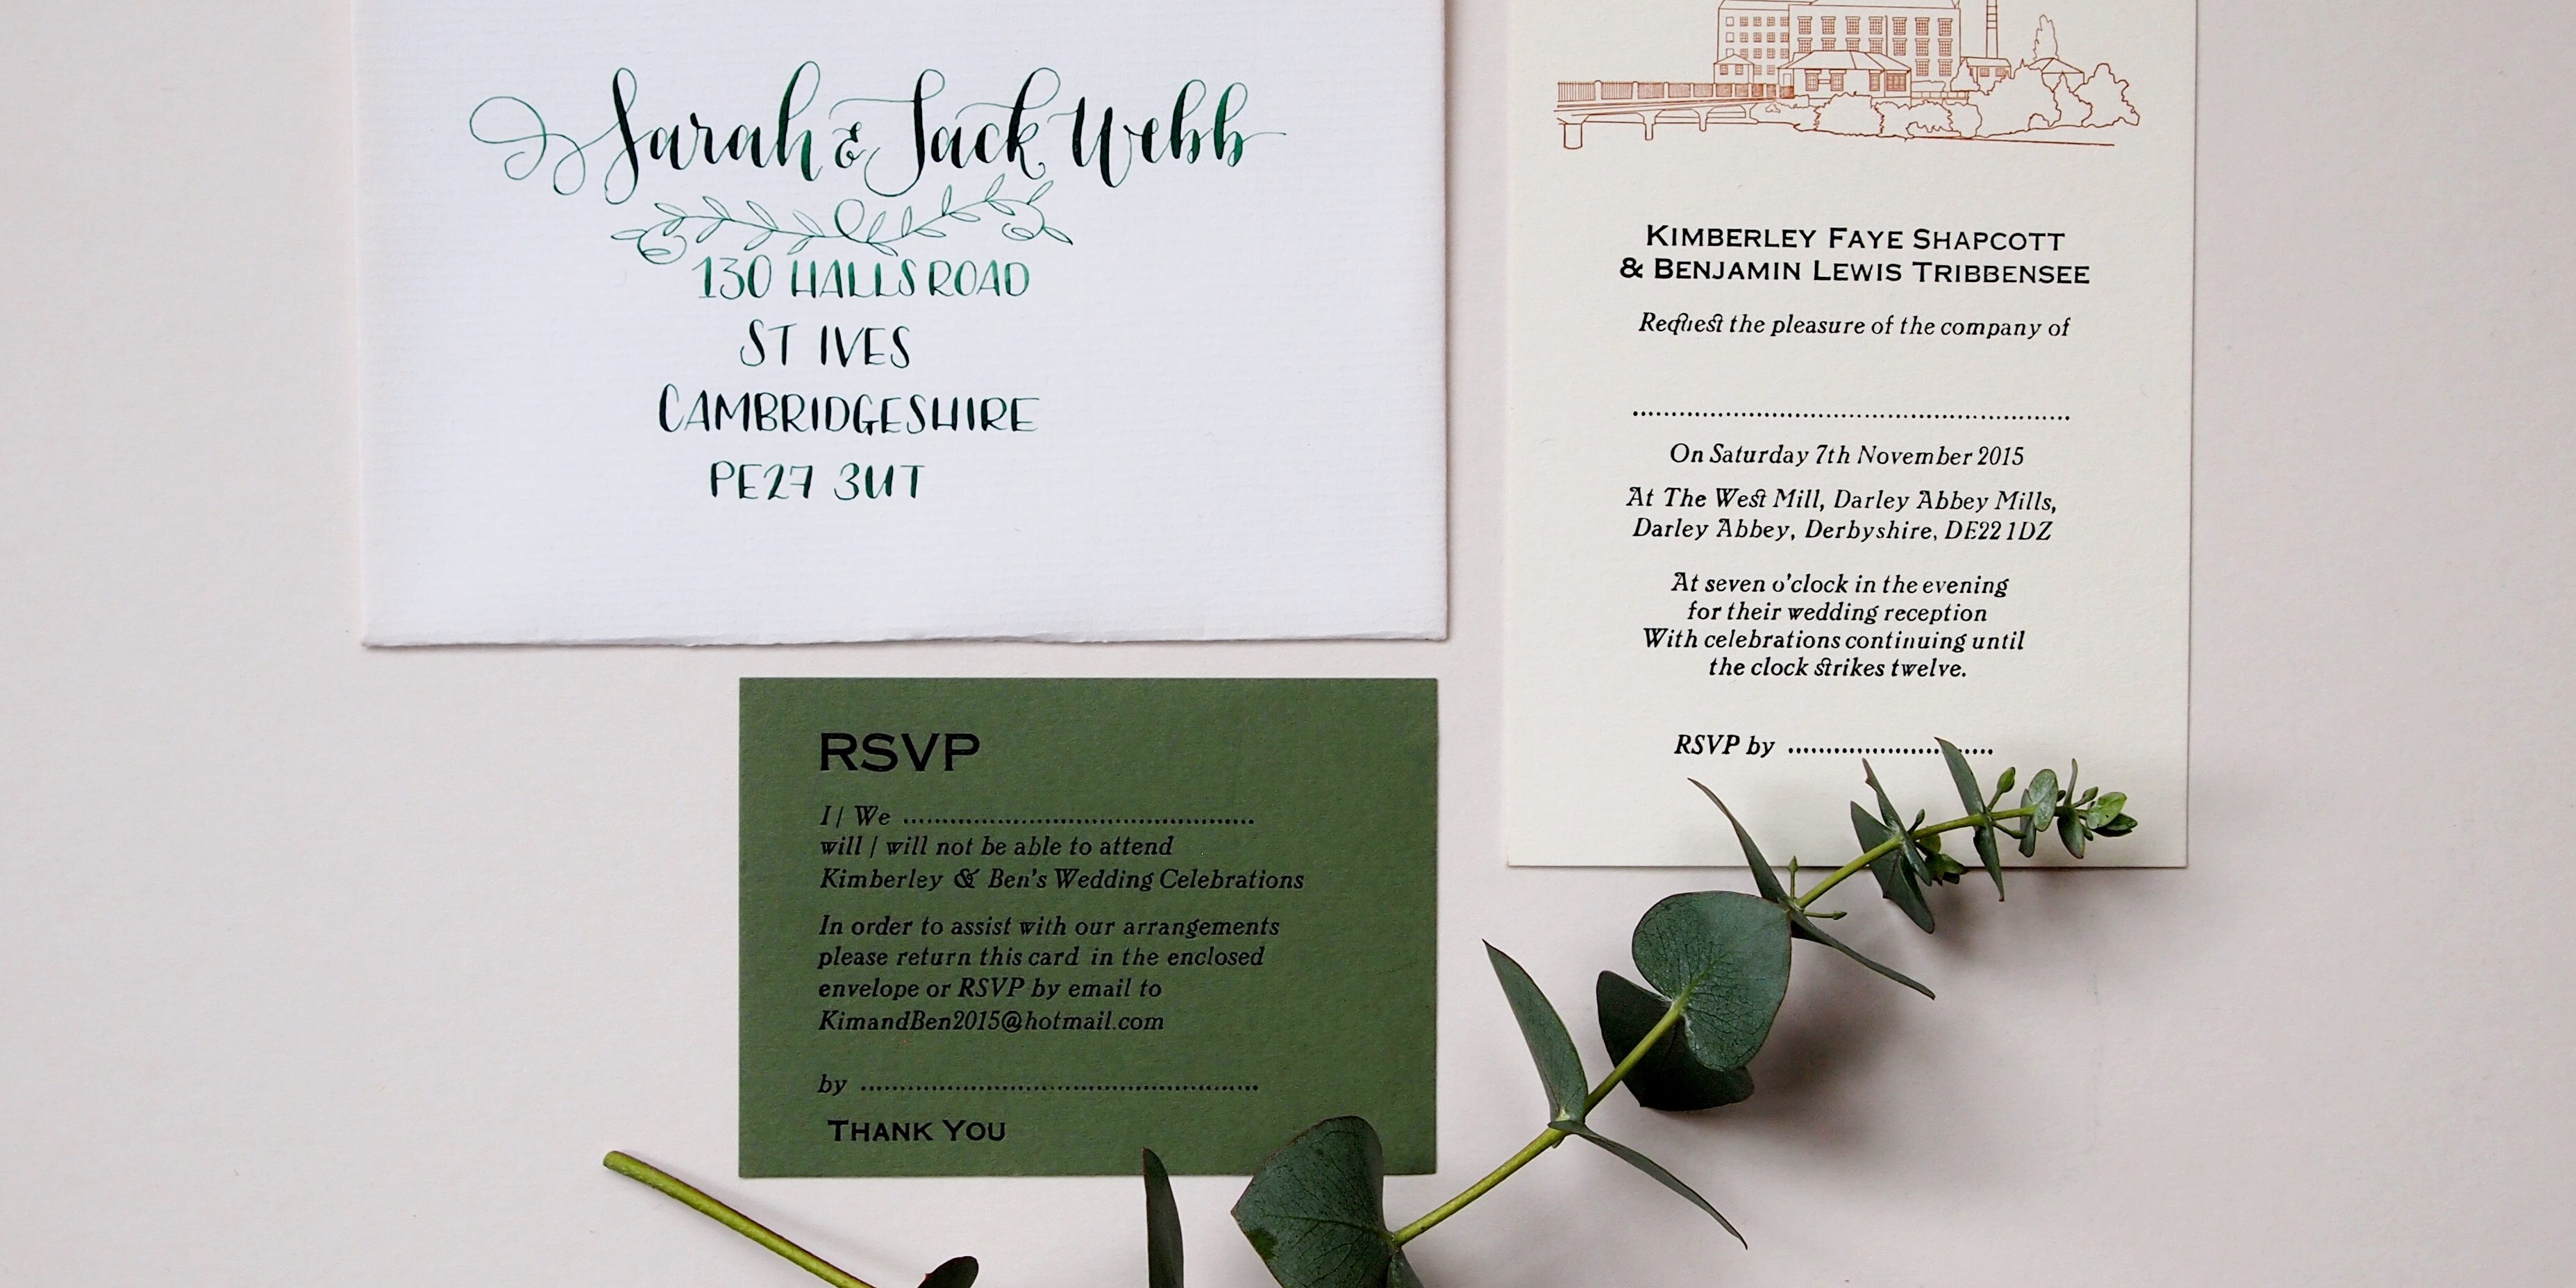 Derby Silk Mill Wedding Suite with Calligraphy